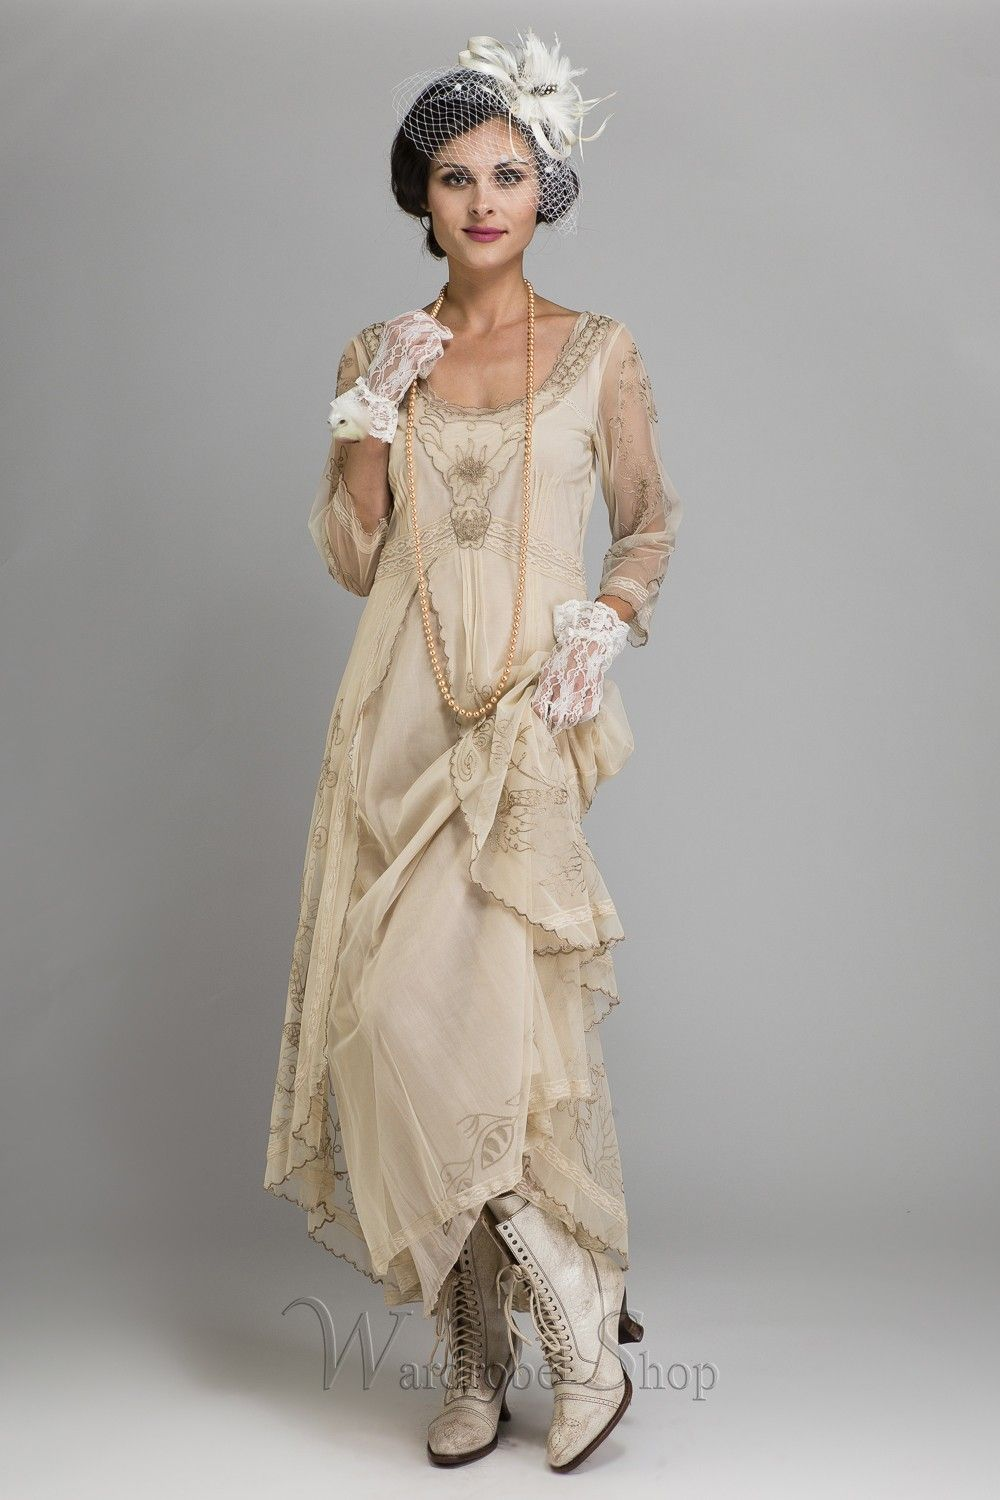 Downton Abbey Tea Party Gown In Pearl By Nataya Party Gowns Vintage Dresses Vintage Inspired Dresses [ 1500 x 1000 Pixel ]